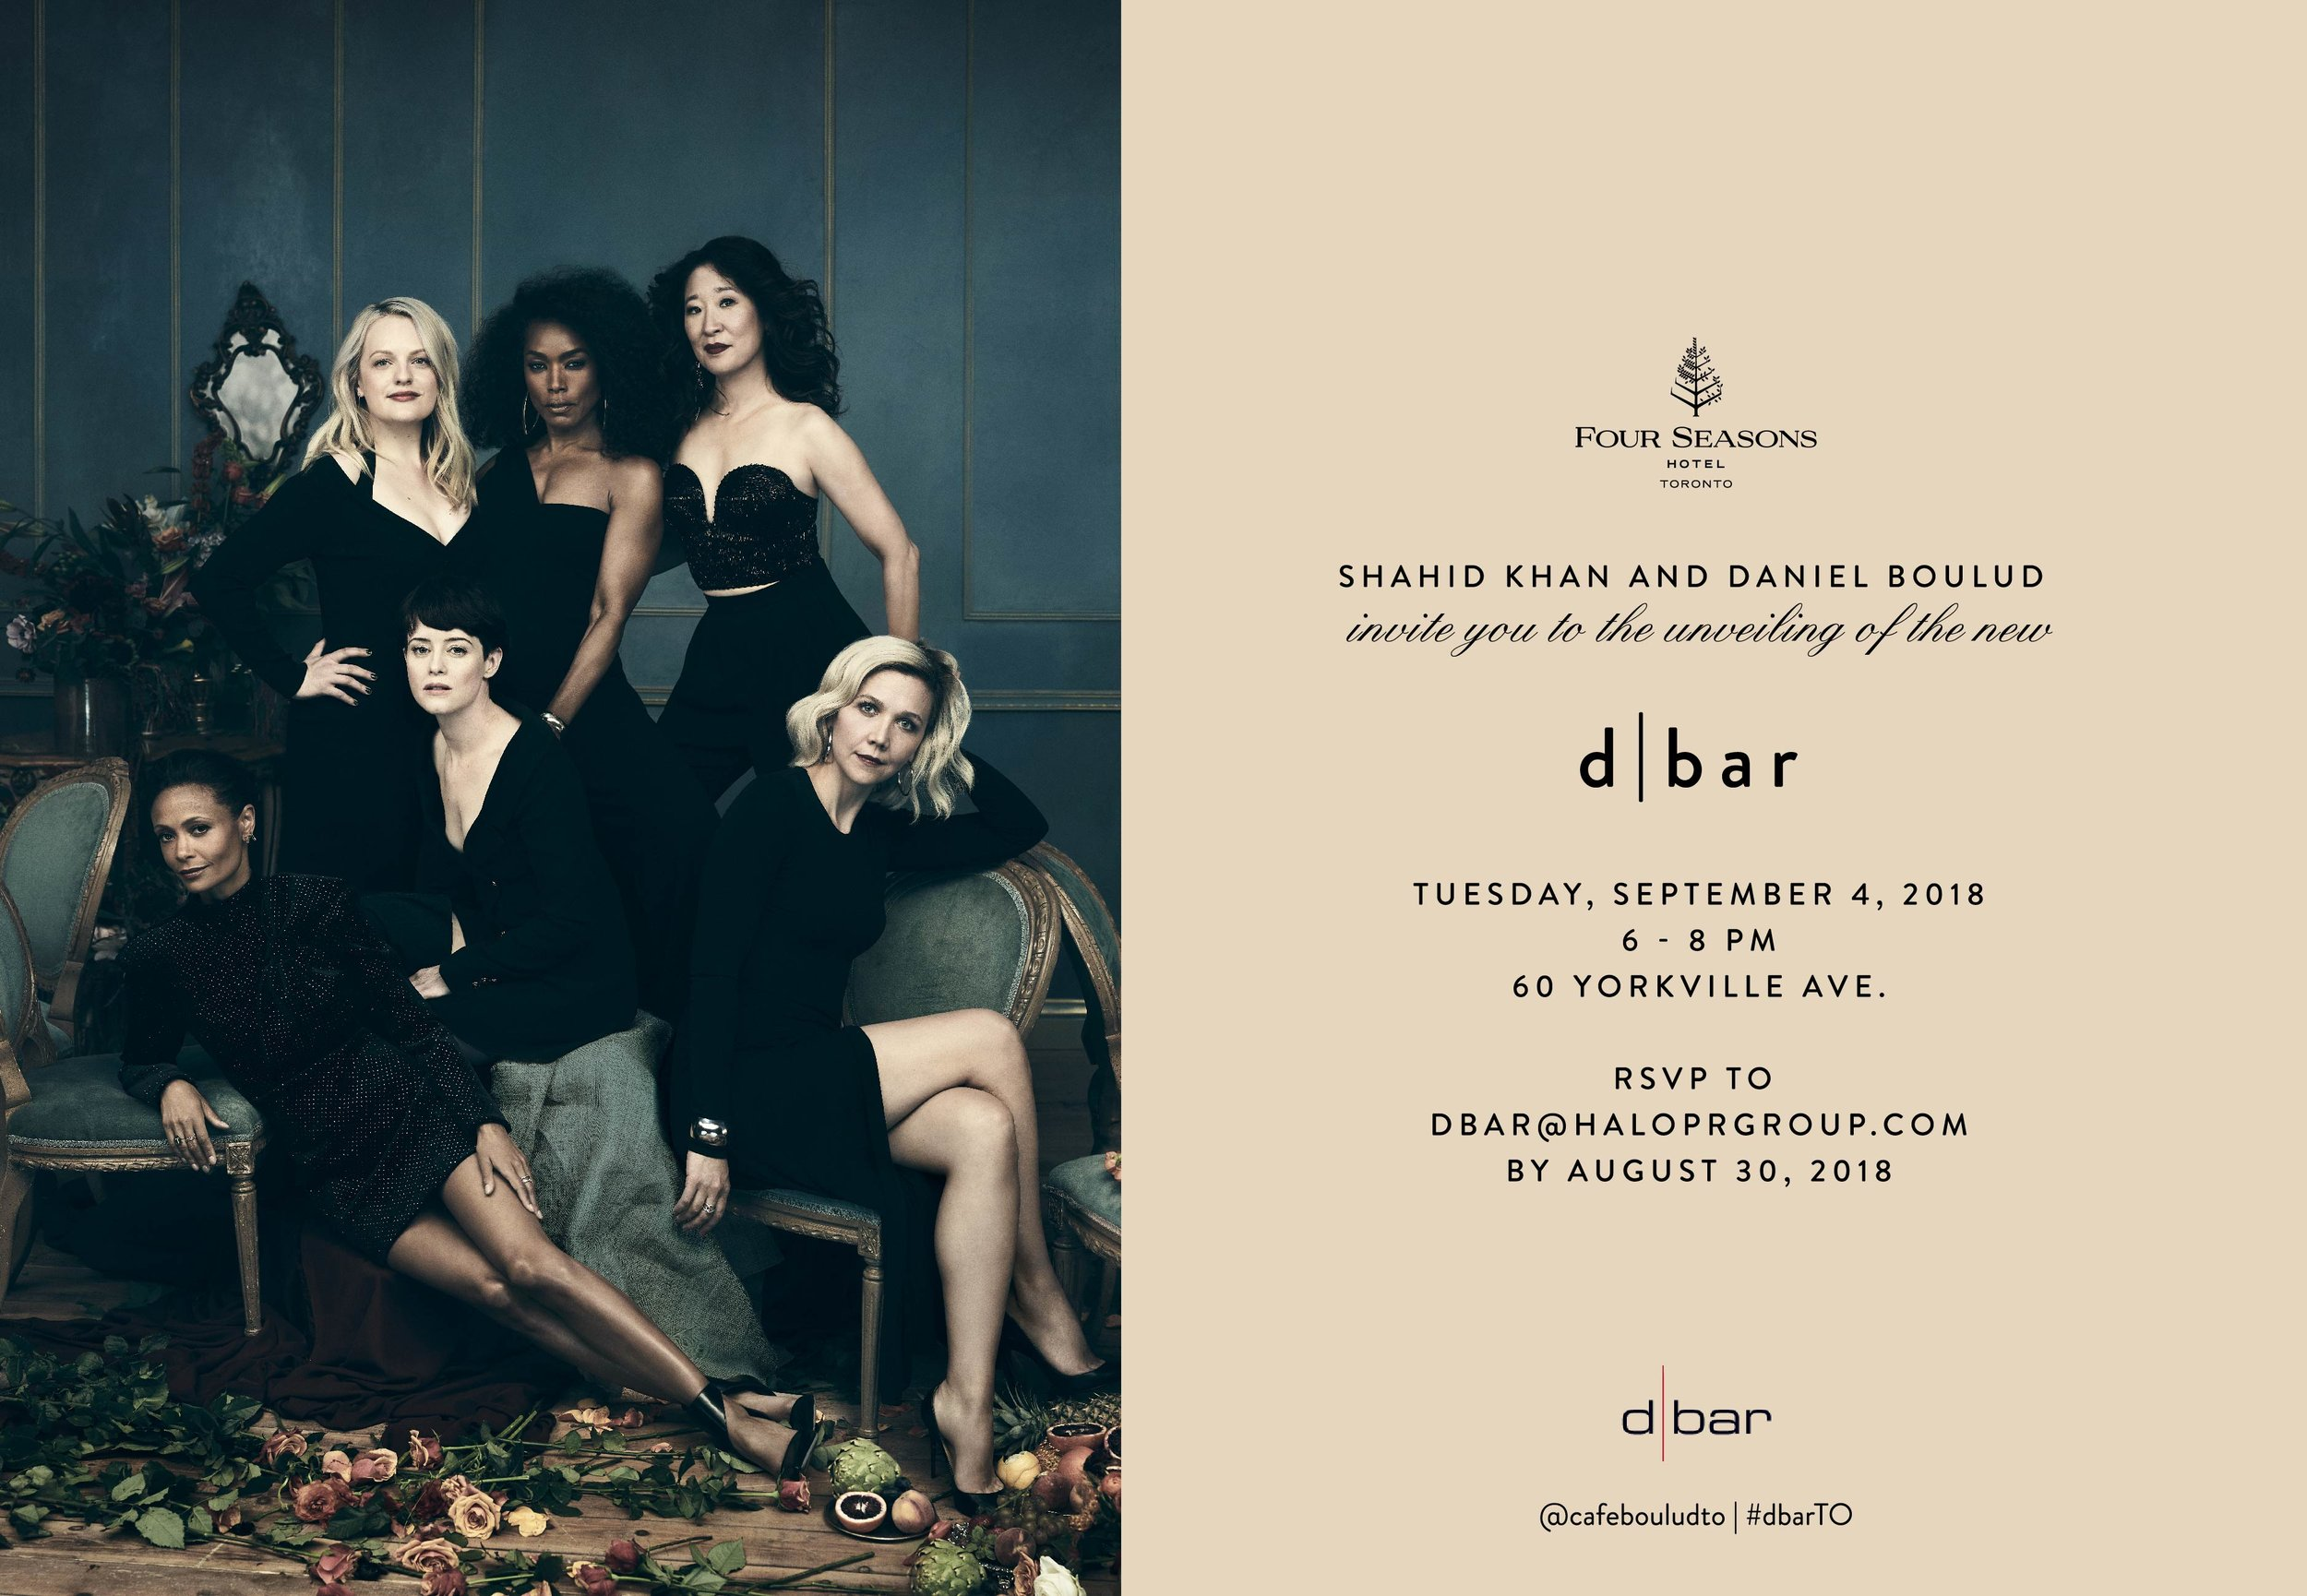 dbar relaunch invite-01.jpg